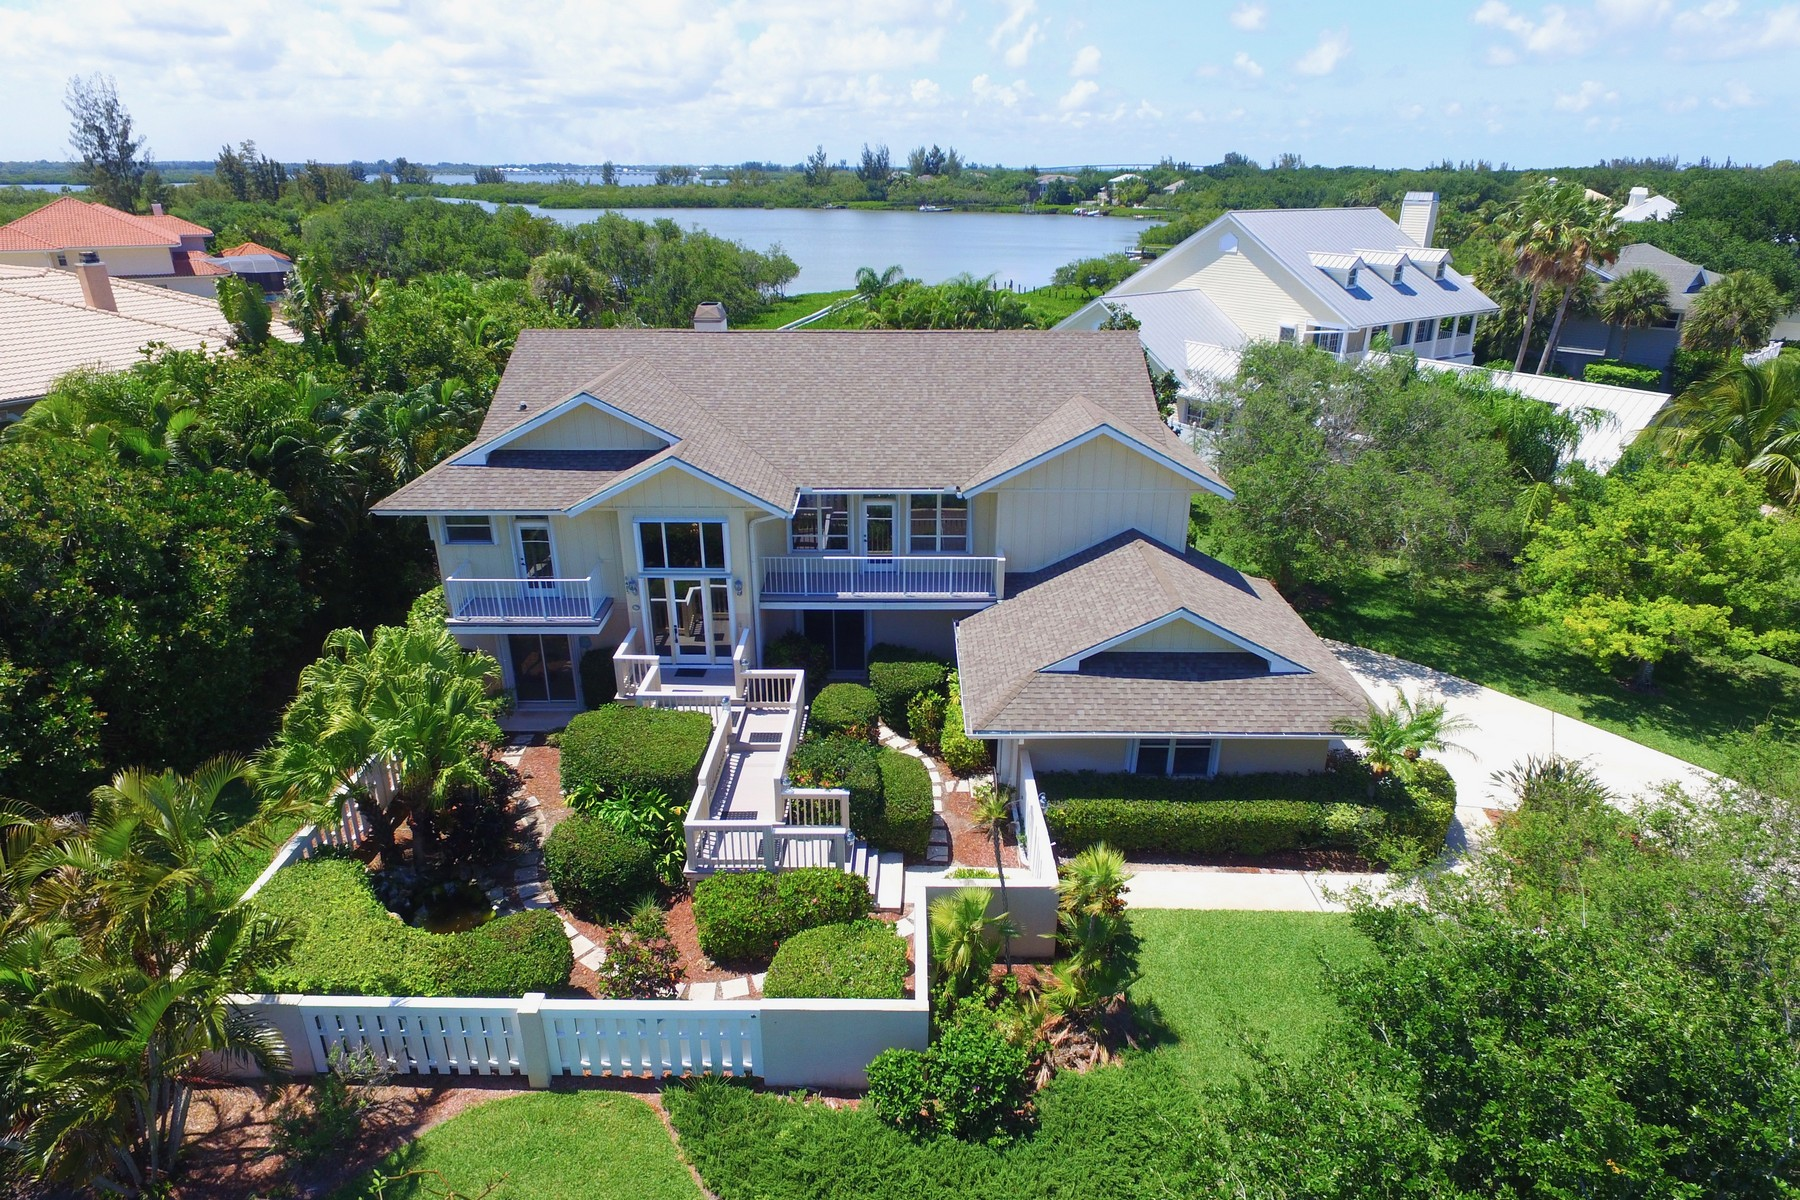 Single Family Homes for Sale at Waterfront Estate with Private Dock 8485 Seacrest Drive Vero Beach, Florida 32963 United States